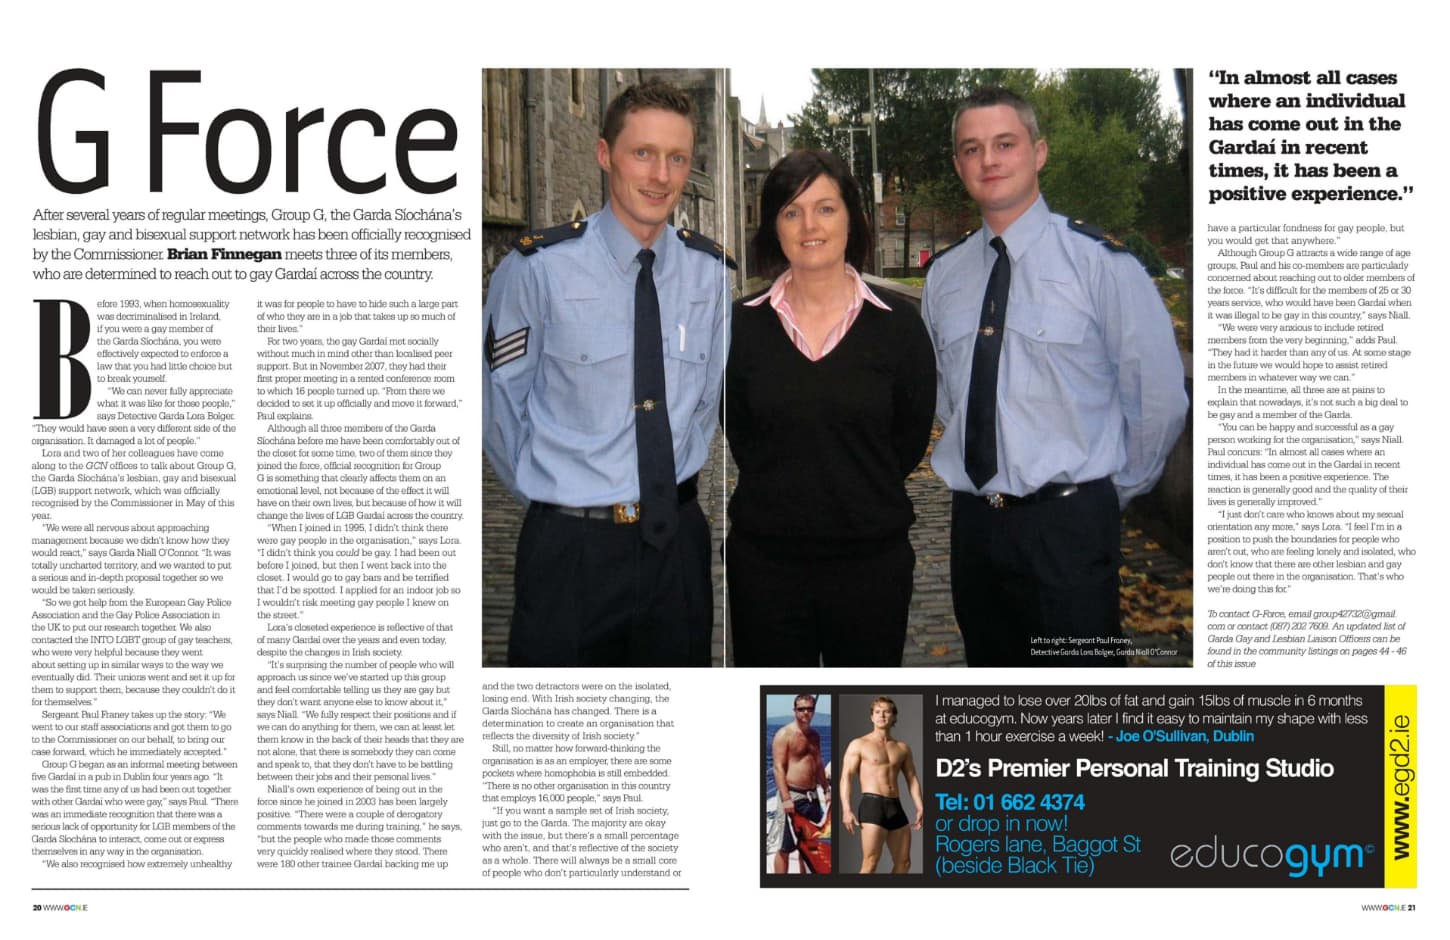 """Taking a look at the production process of GCN: a featured article from the pages of GCN titled """"G Force"""" featuring a photo of two Gardai officers."""